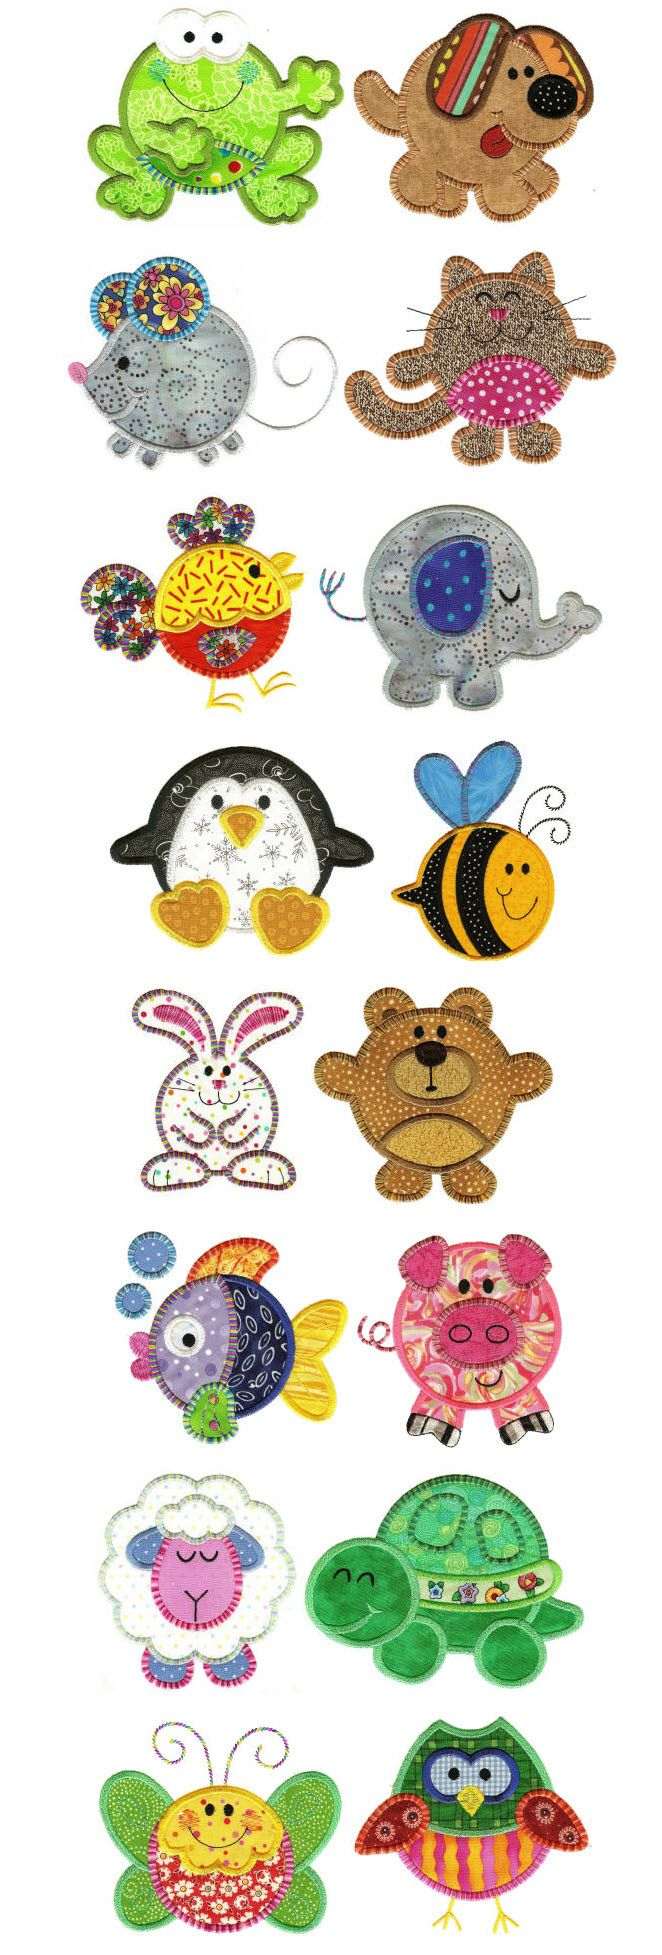 Embroidery | Free Maching Embroidery Designs | Round Up The Critters Applique